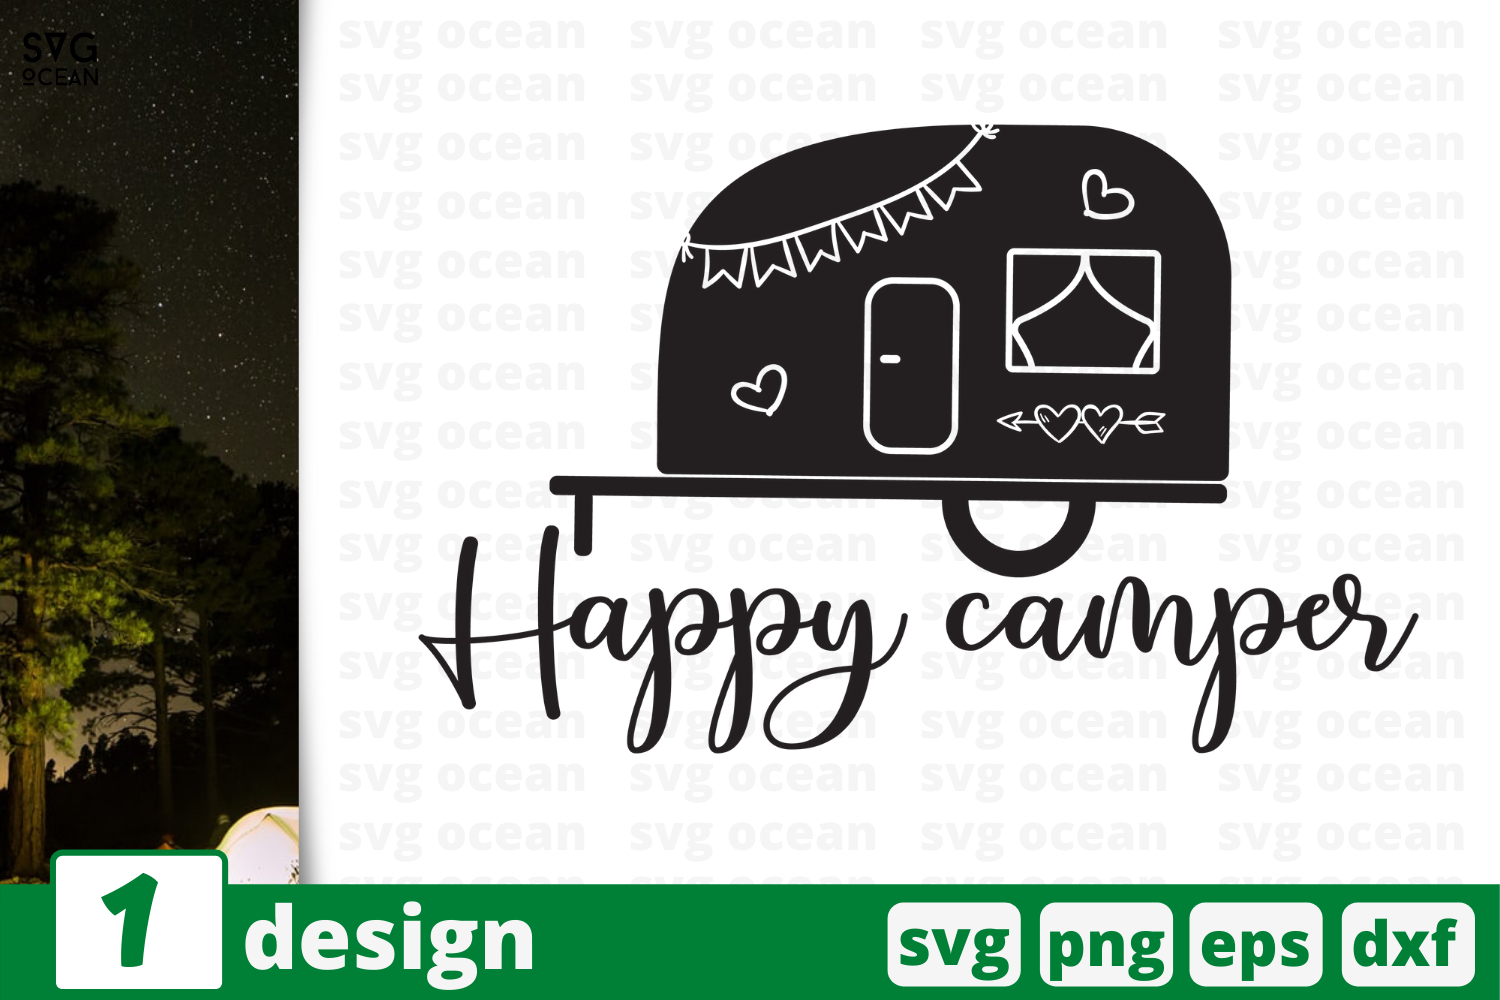 Download Free Happy Camper Graphic By Svgocean Creative Fabrica for Cricut Explore, Silhouette and other cutting machines.